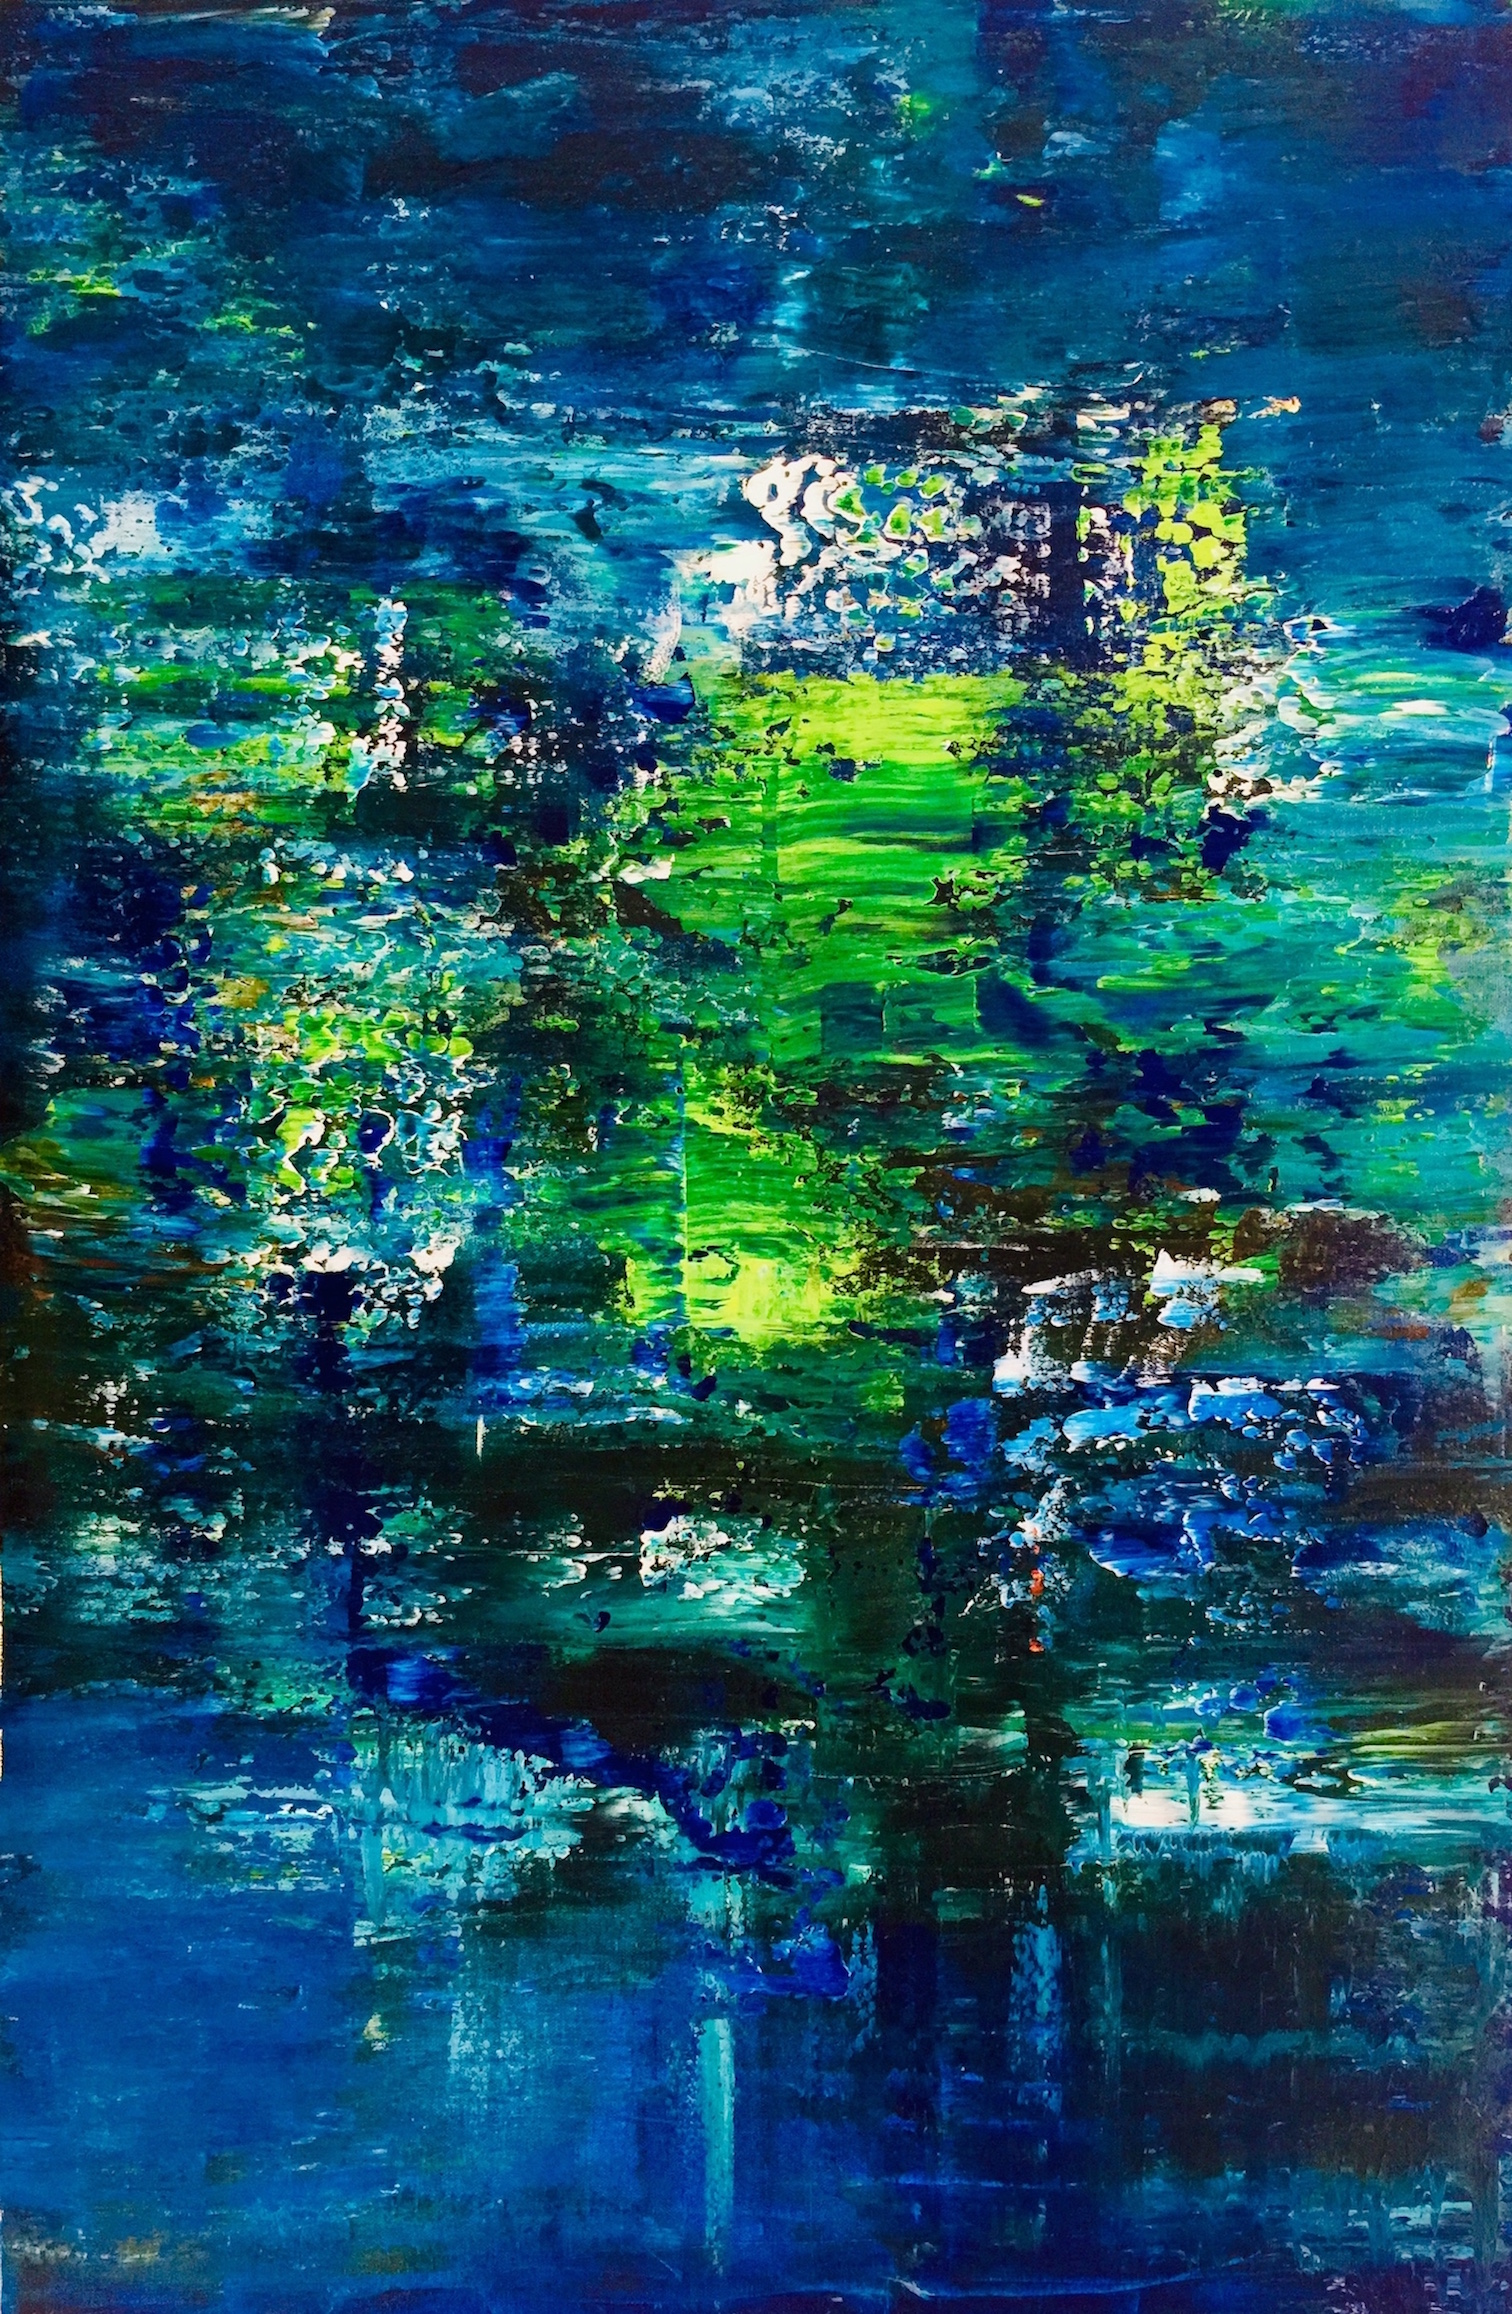 Abstract painting of waters by Maria-Victoria Checa At Gerhard Richter style